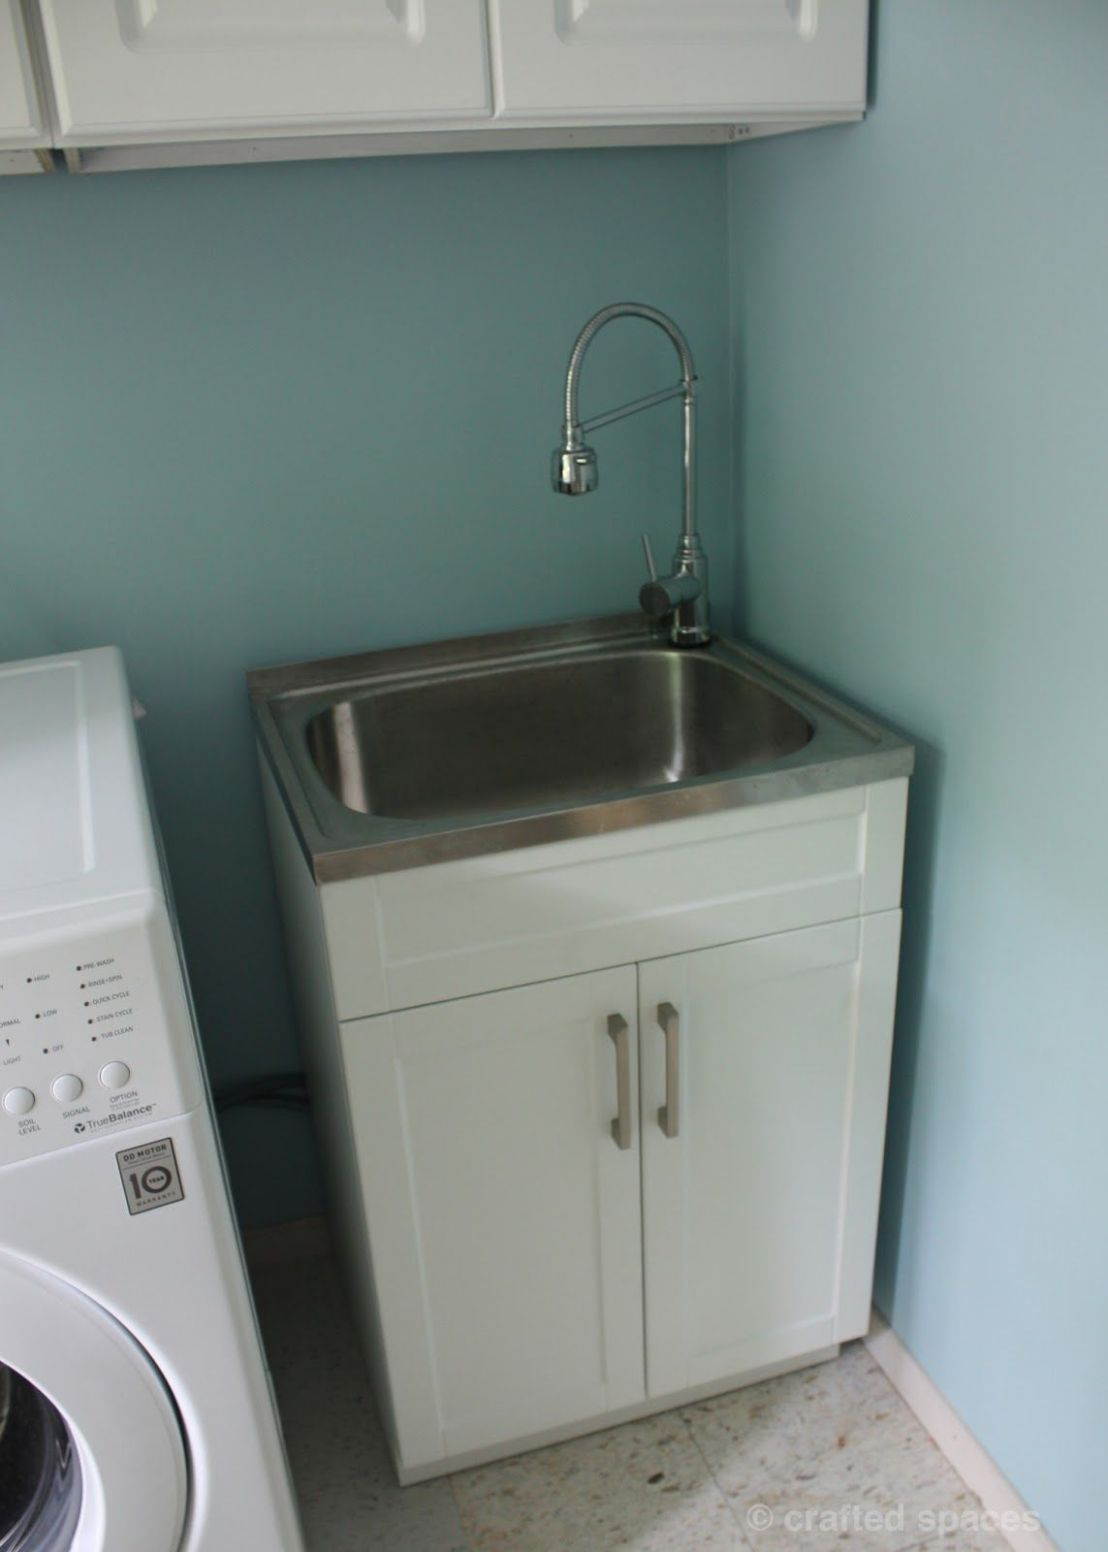 At Home: Laundry Room Makeover | Laundry room sink, Laundry room ..